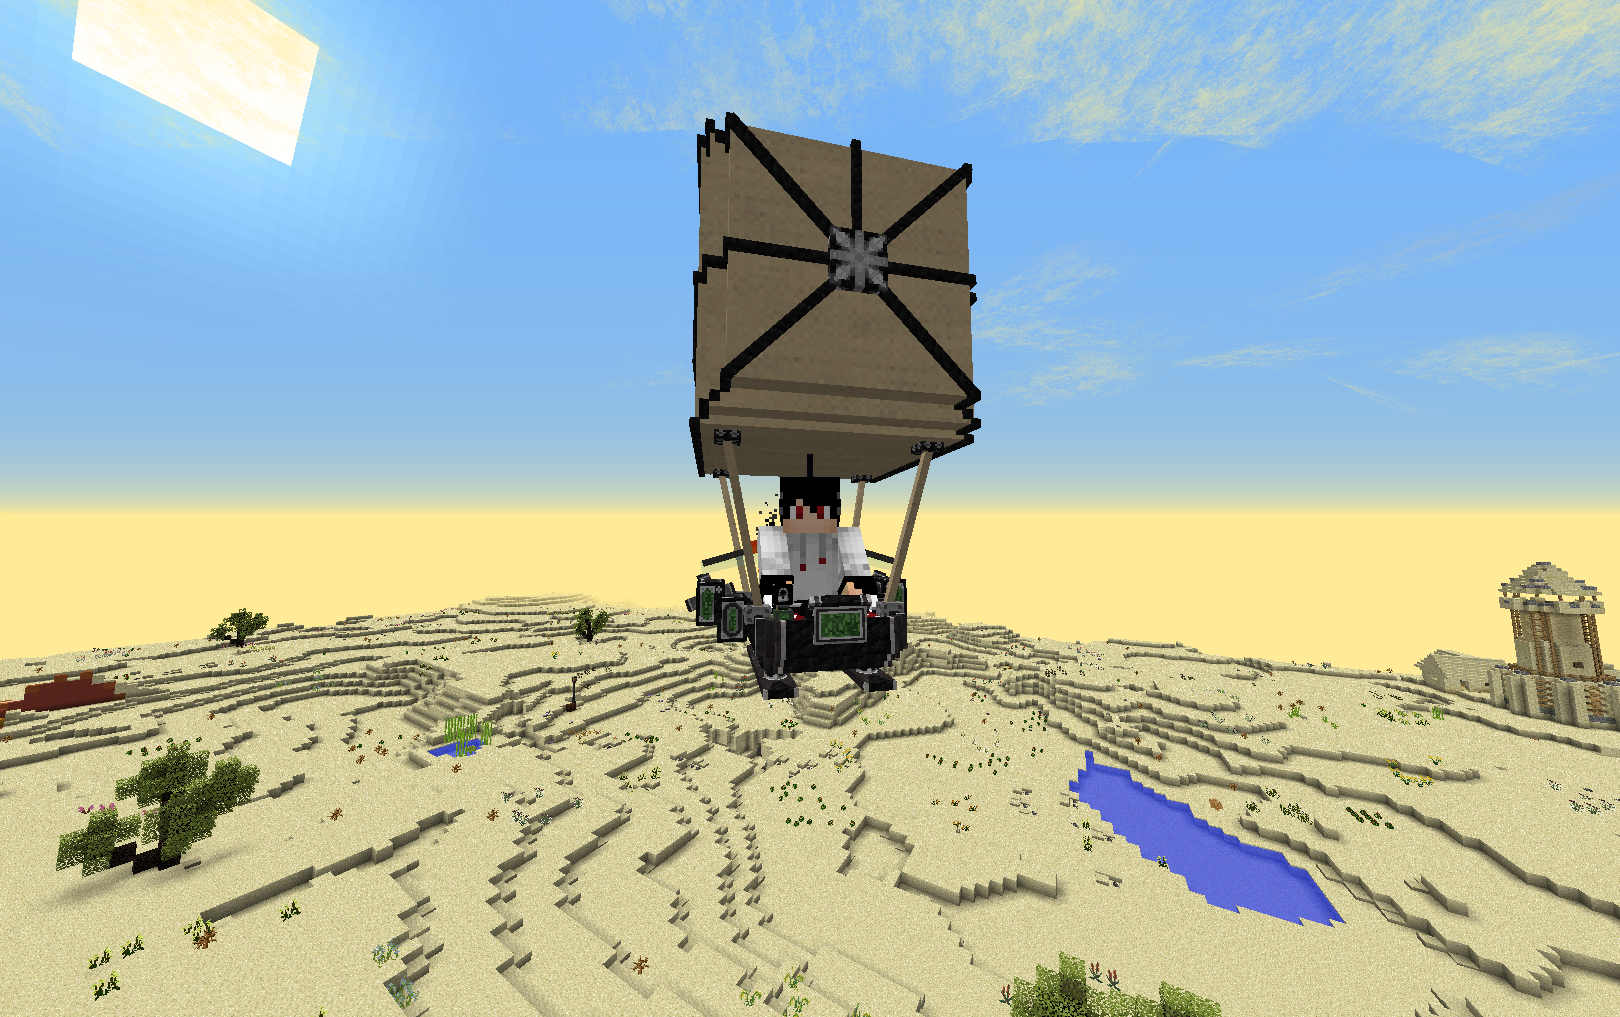 airship in the desert